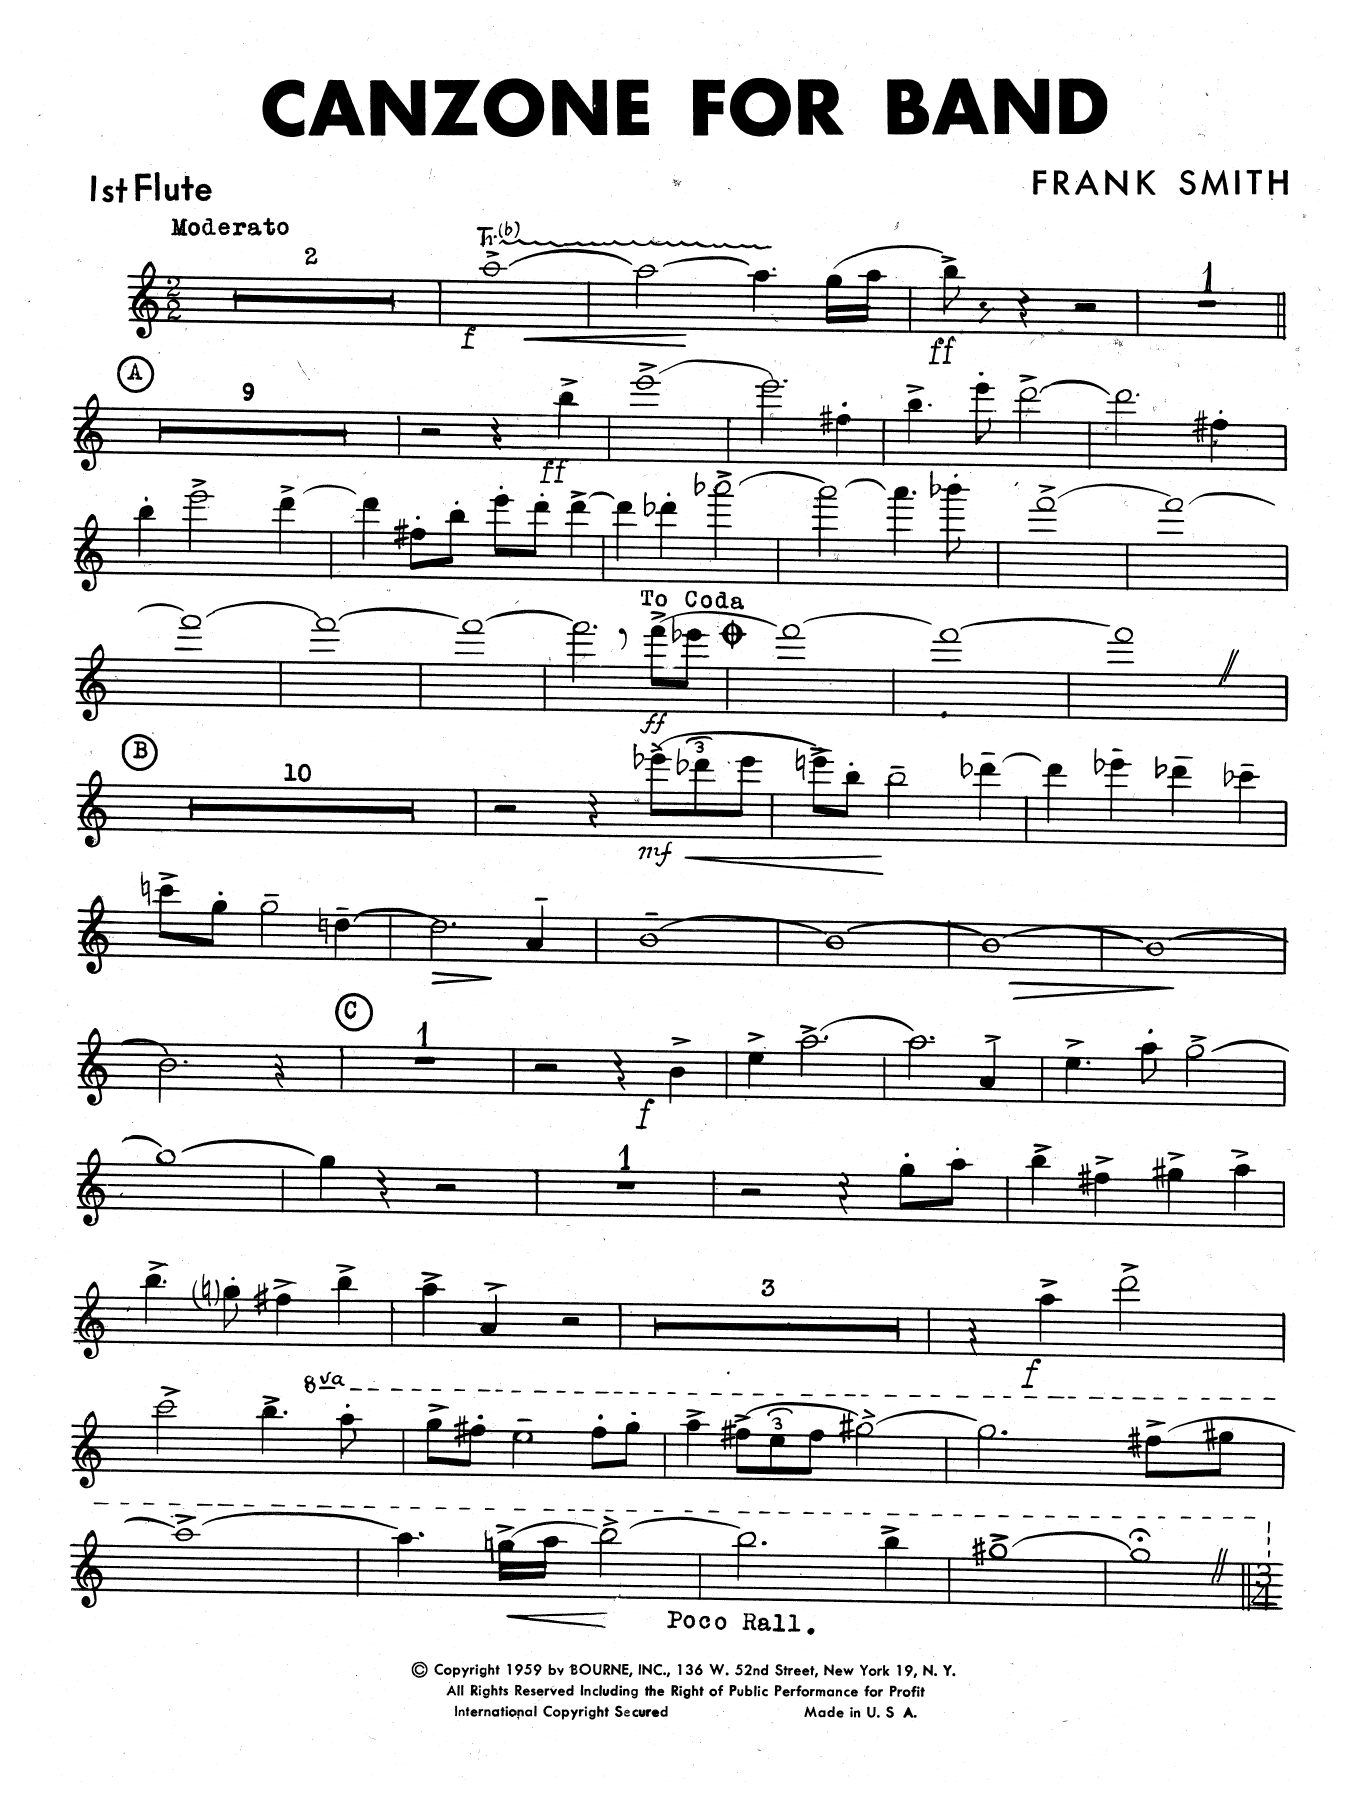 Canzone For Band - 1st Flute